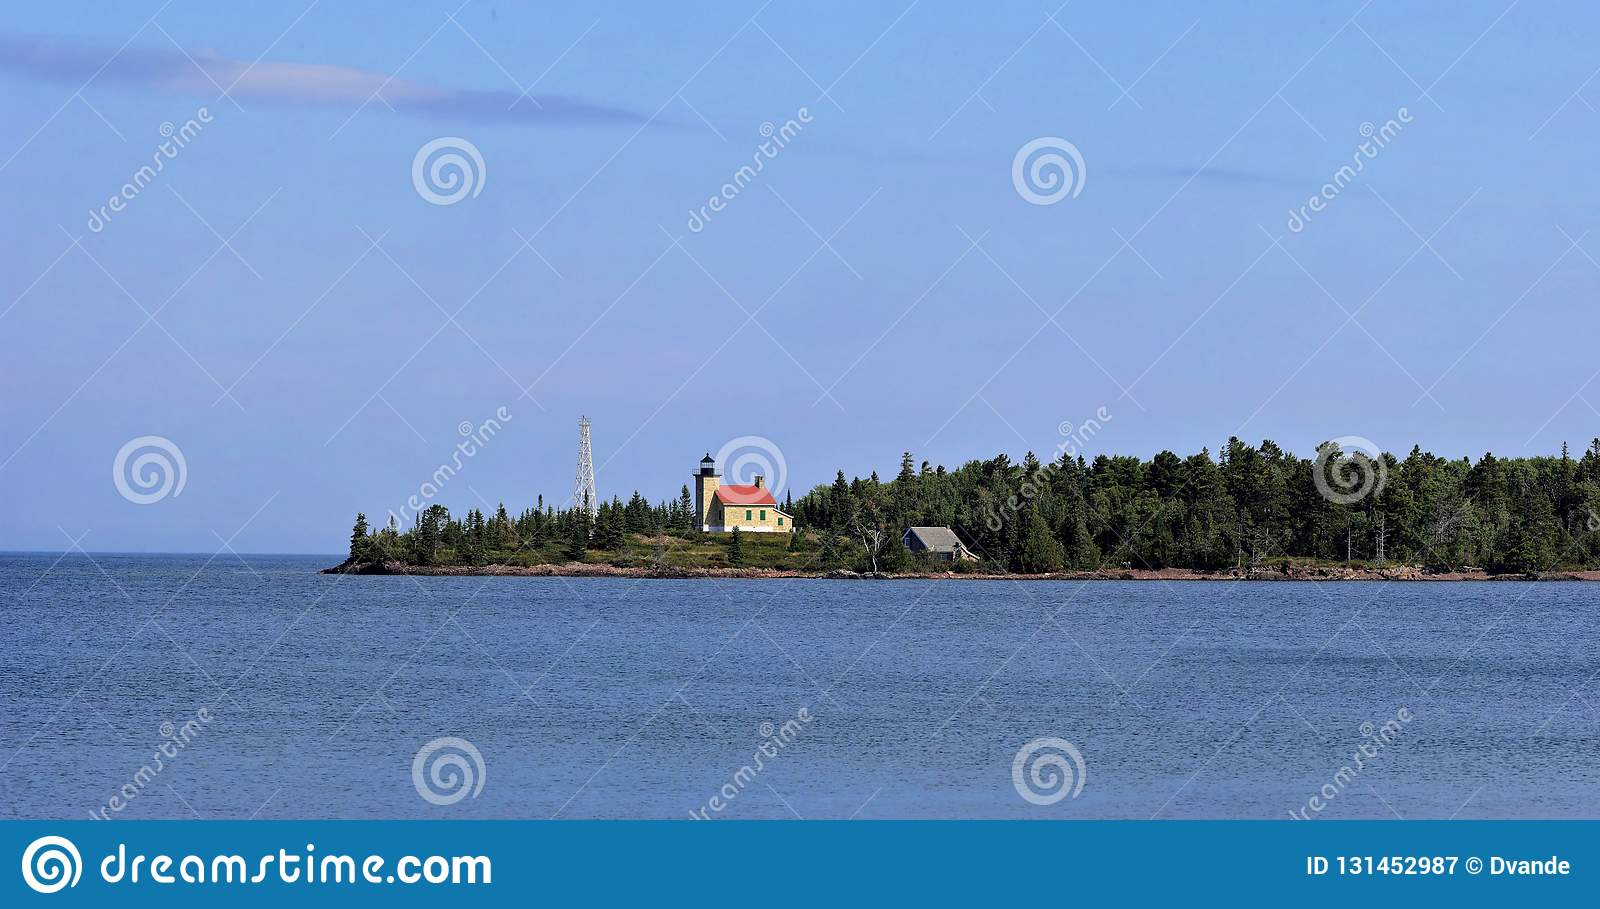 Copper Harbor Light is a lighthouse located in the harbor of Copper Harbor, Michigan USA on the Keweenaw Peninsula of Upper